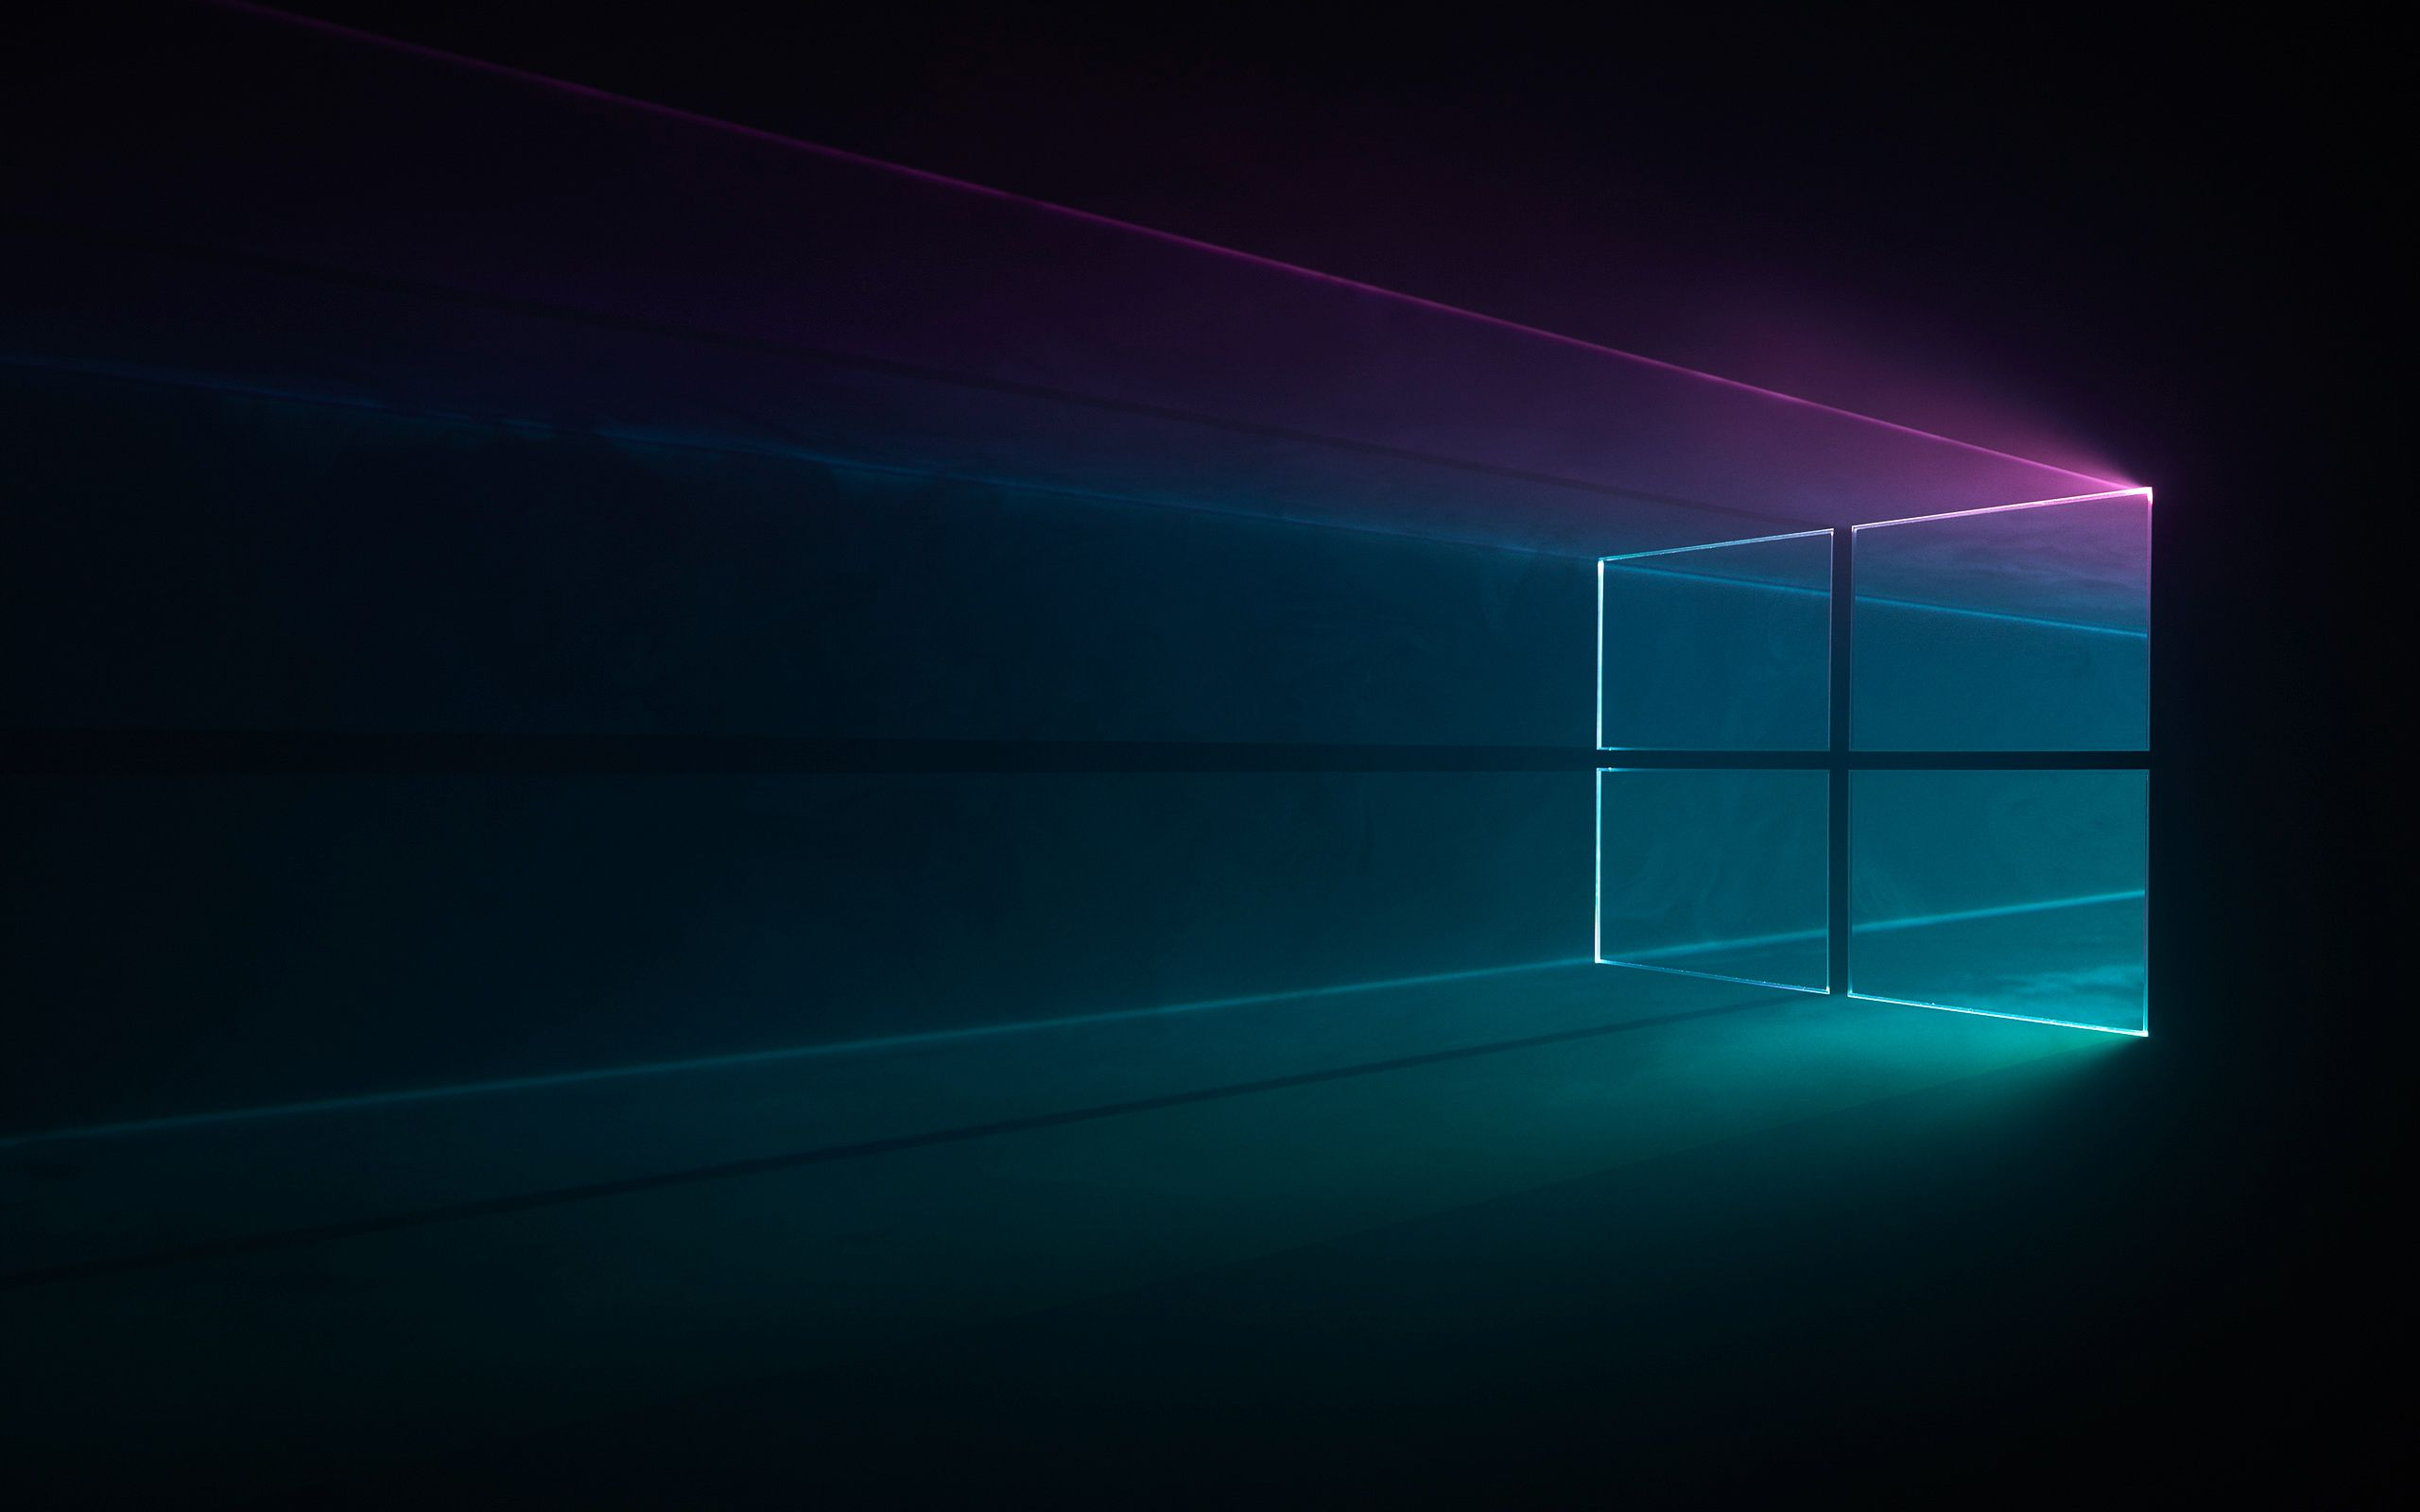 Windows 11 Hd Wallpaper 2018 Windows Wallpaper Wallpaper Windows 10 Hd Wallpapers For Laptop